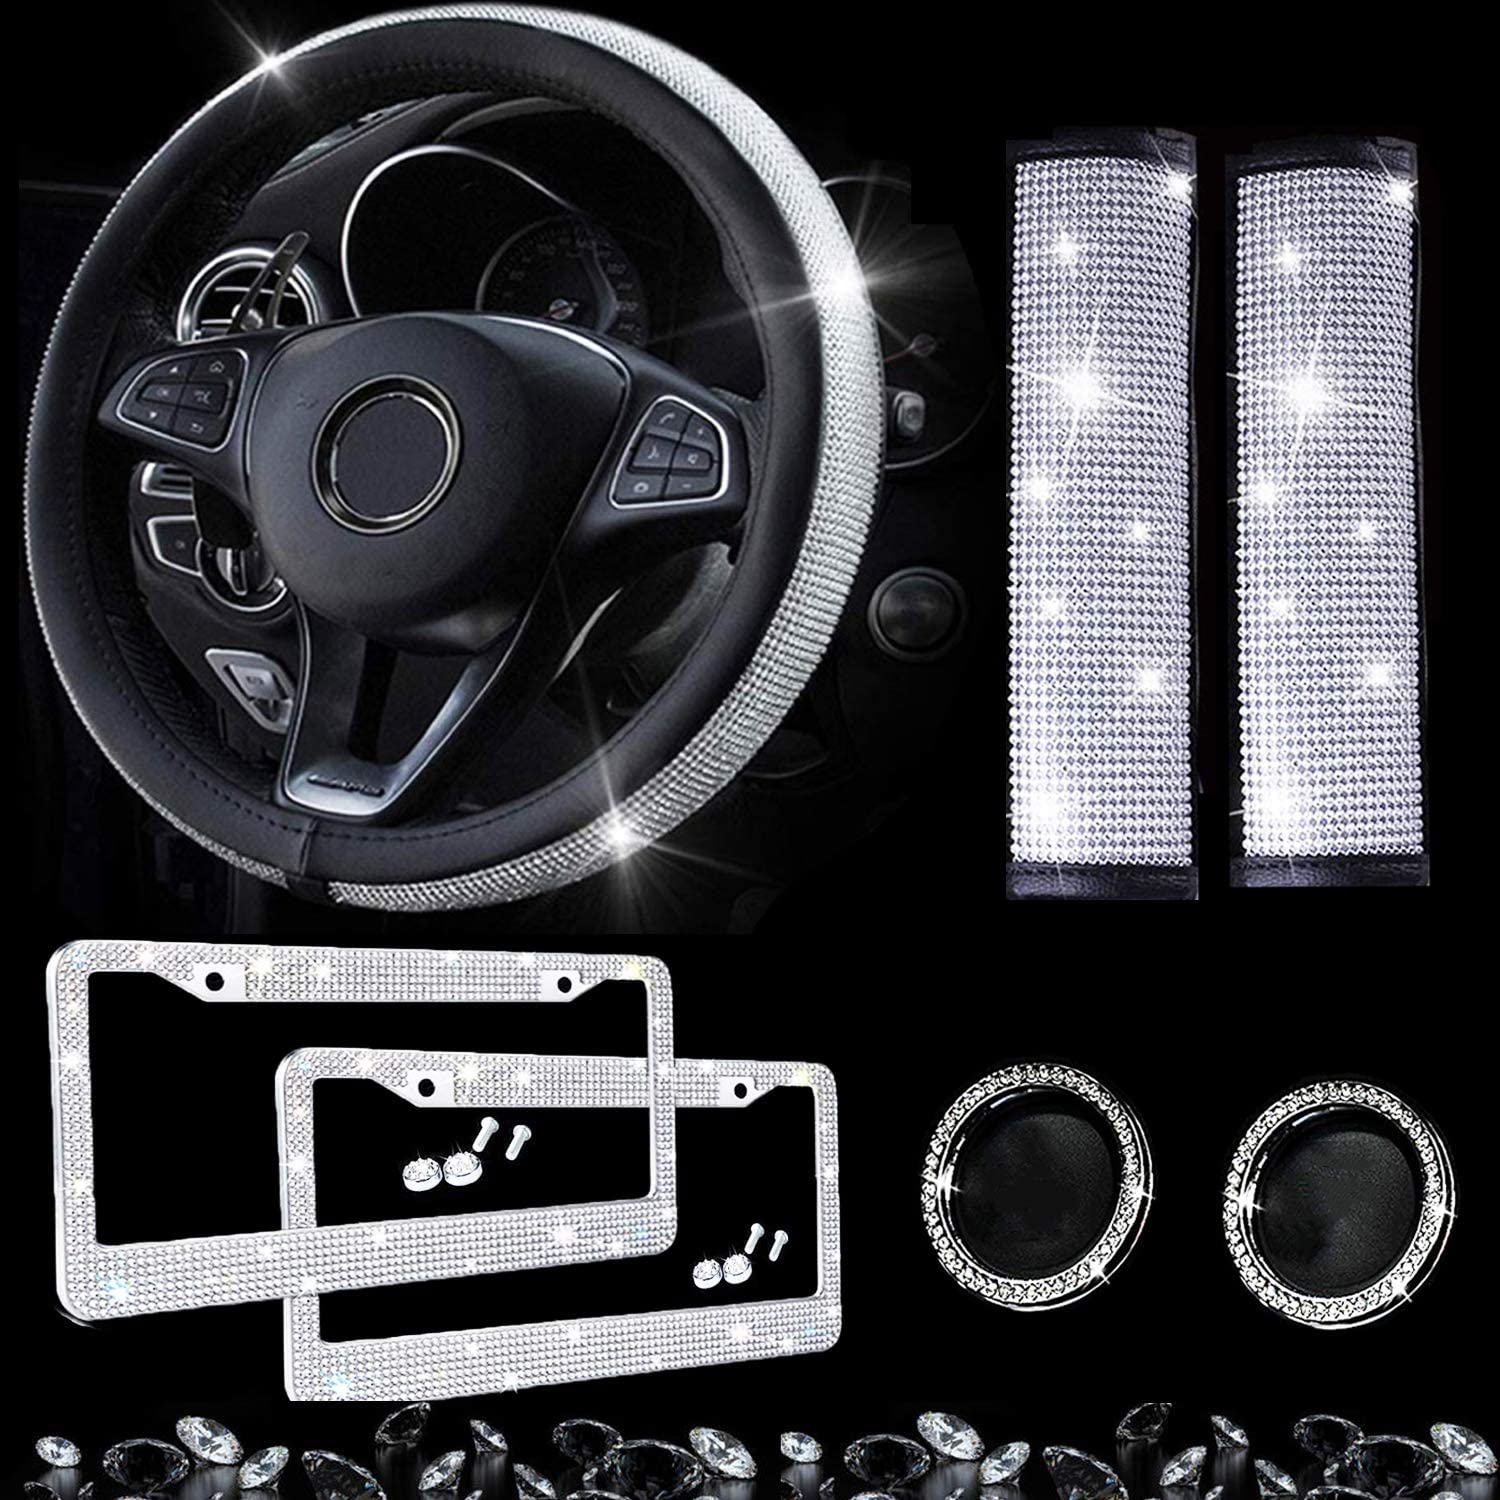 Dyshuai 7Pieces Bling Car Accessories Set-15Inch Glitter Bling Car Steering Wheel Cover, Diamond License Plate Frames, Rhinestone Emblem Sticker Rings, Crystal Seat Belt Covers (Bling-7Packs)